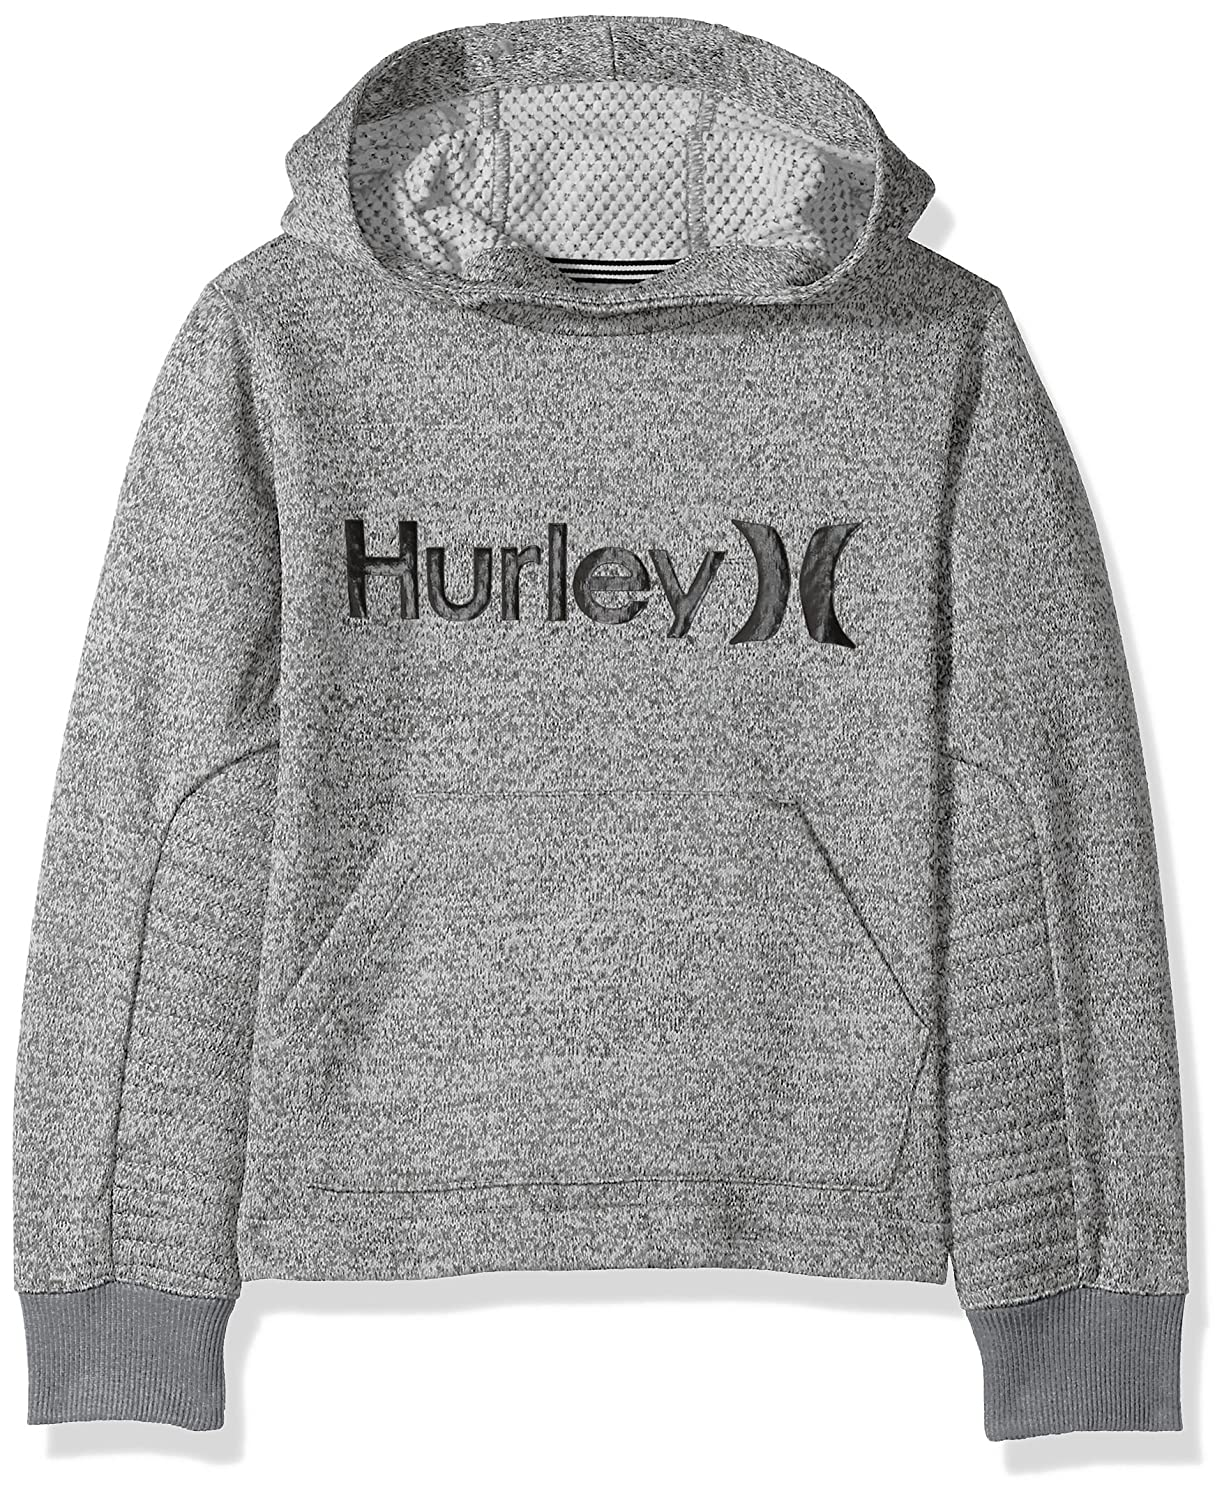 Hurley Boys' One & Only Therma-fit Pullover